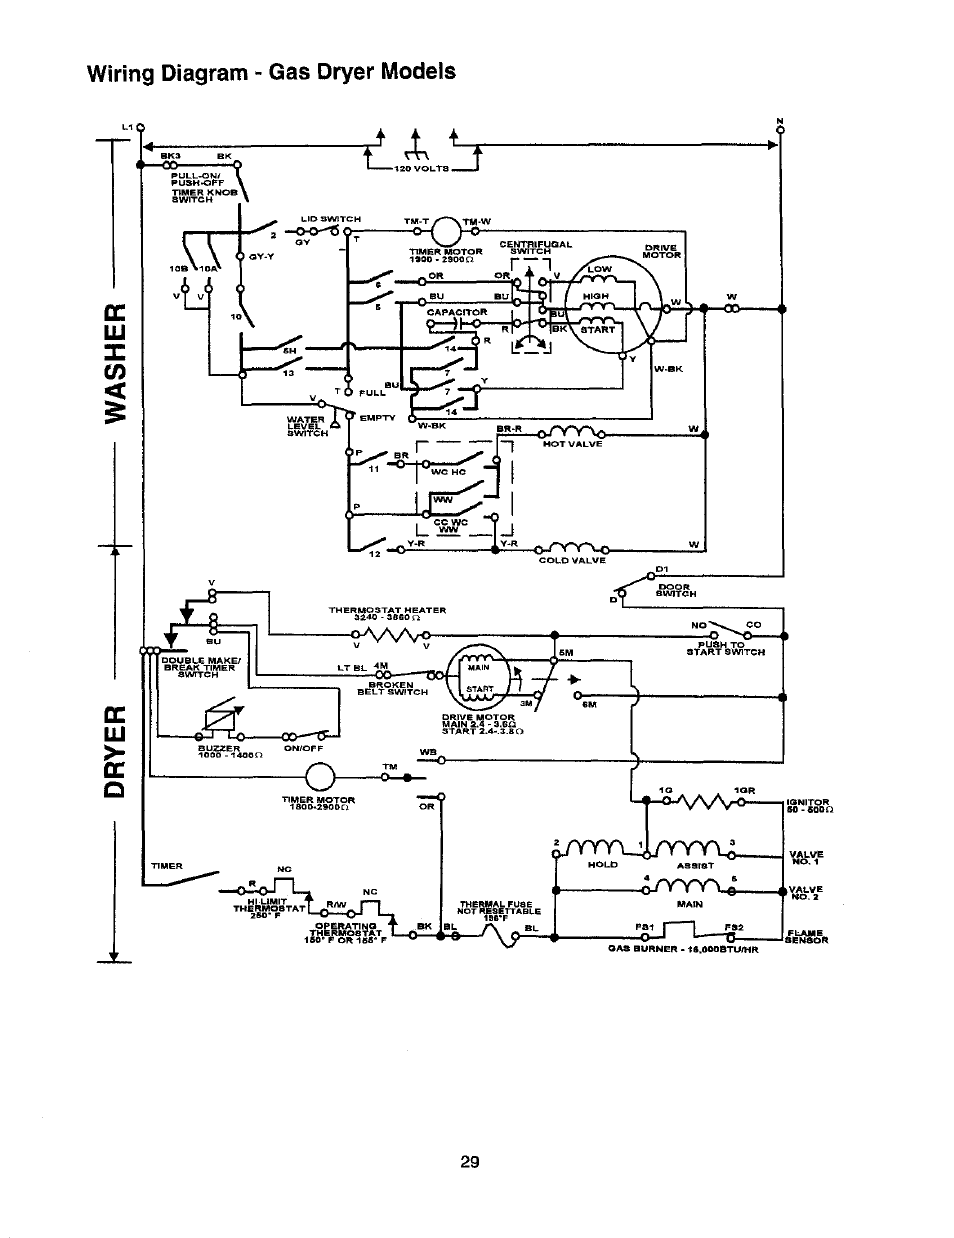 medium resolution of whirlpool wiring diagrams wiring diagram third levelwiring diagram gas dryer models whirlpool thin twin user manual